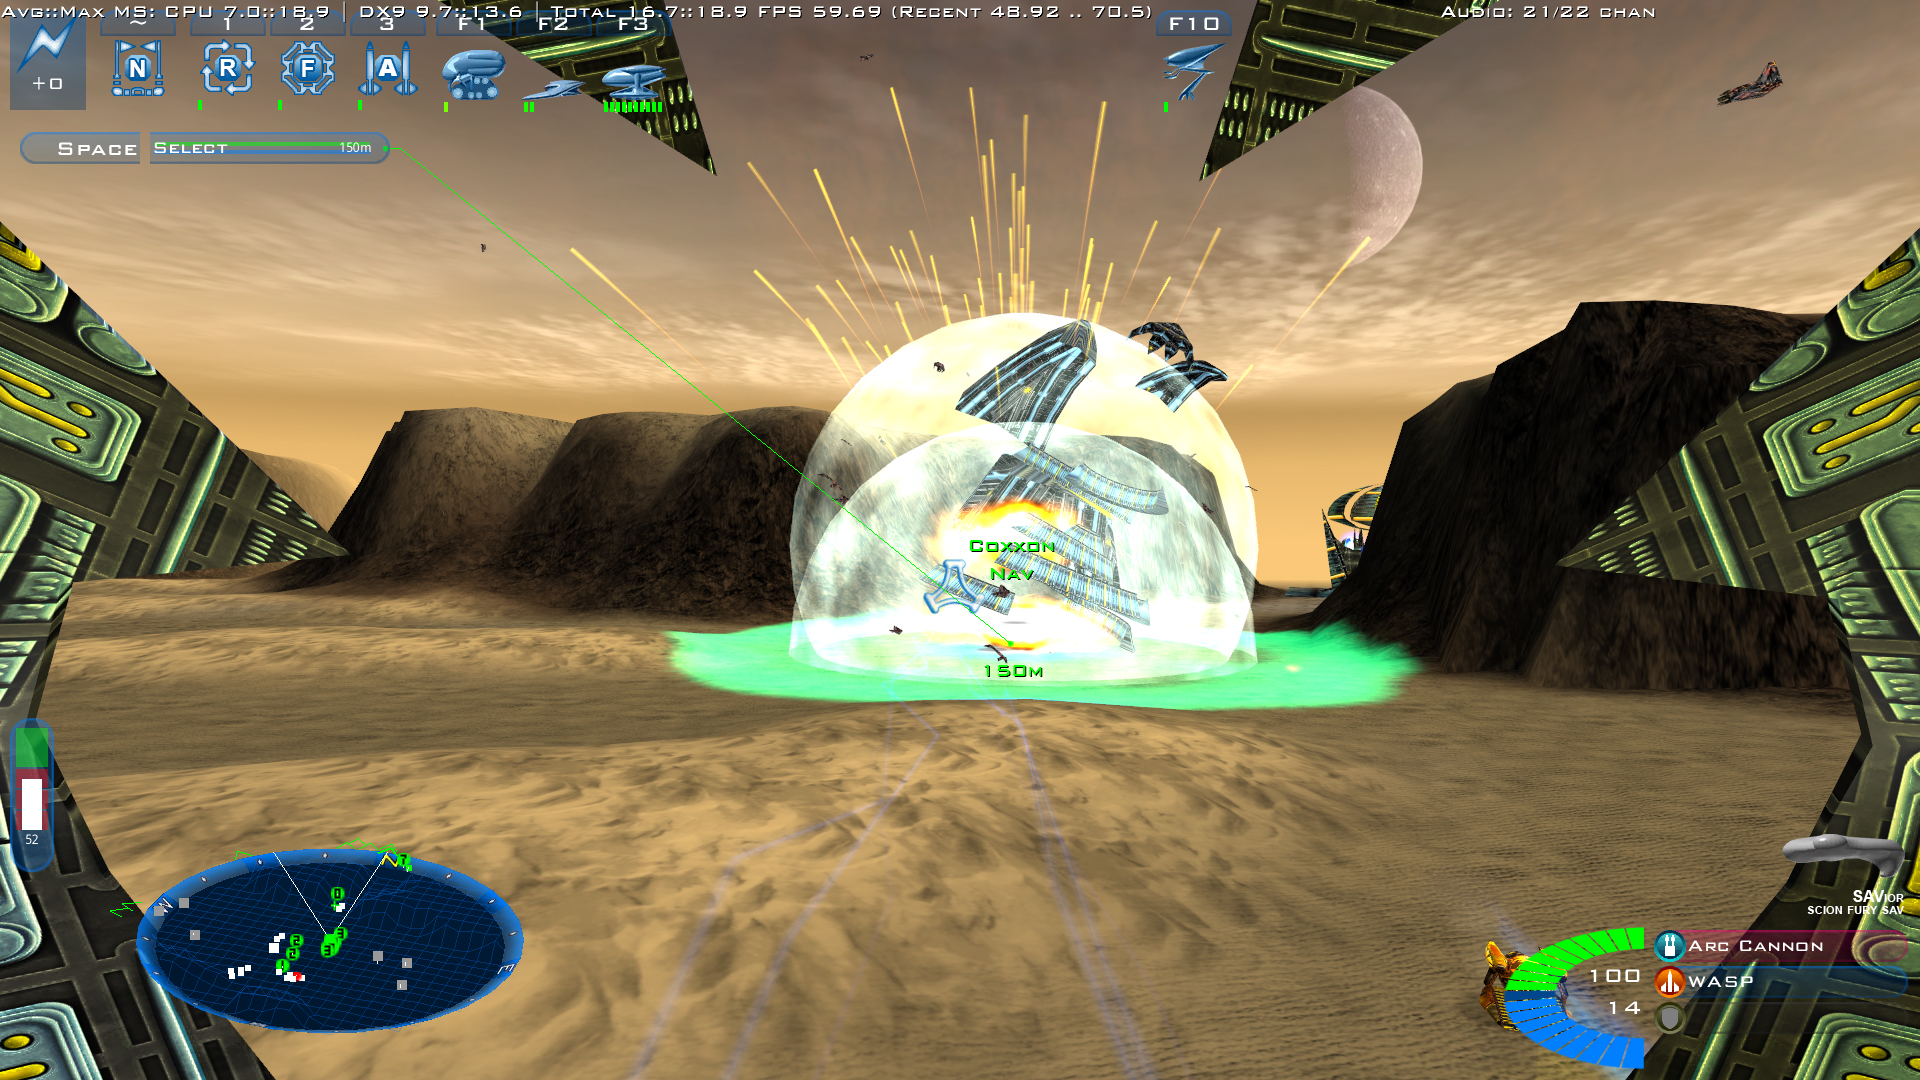 Dowedie 8 image battlezone ii remodeled for battlezone for Battlezone 2